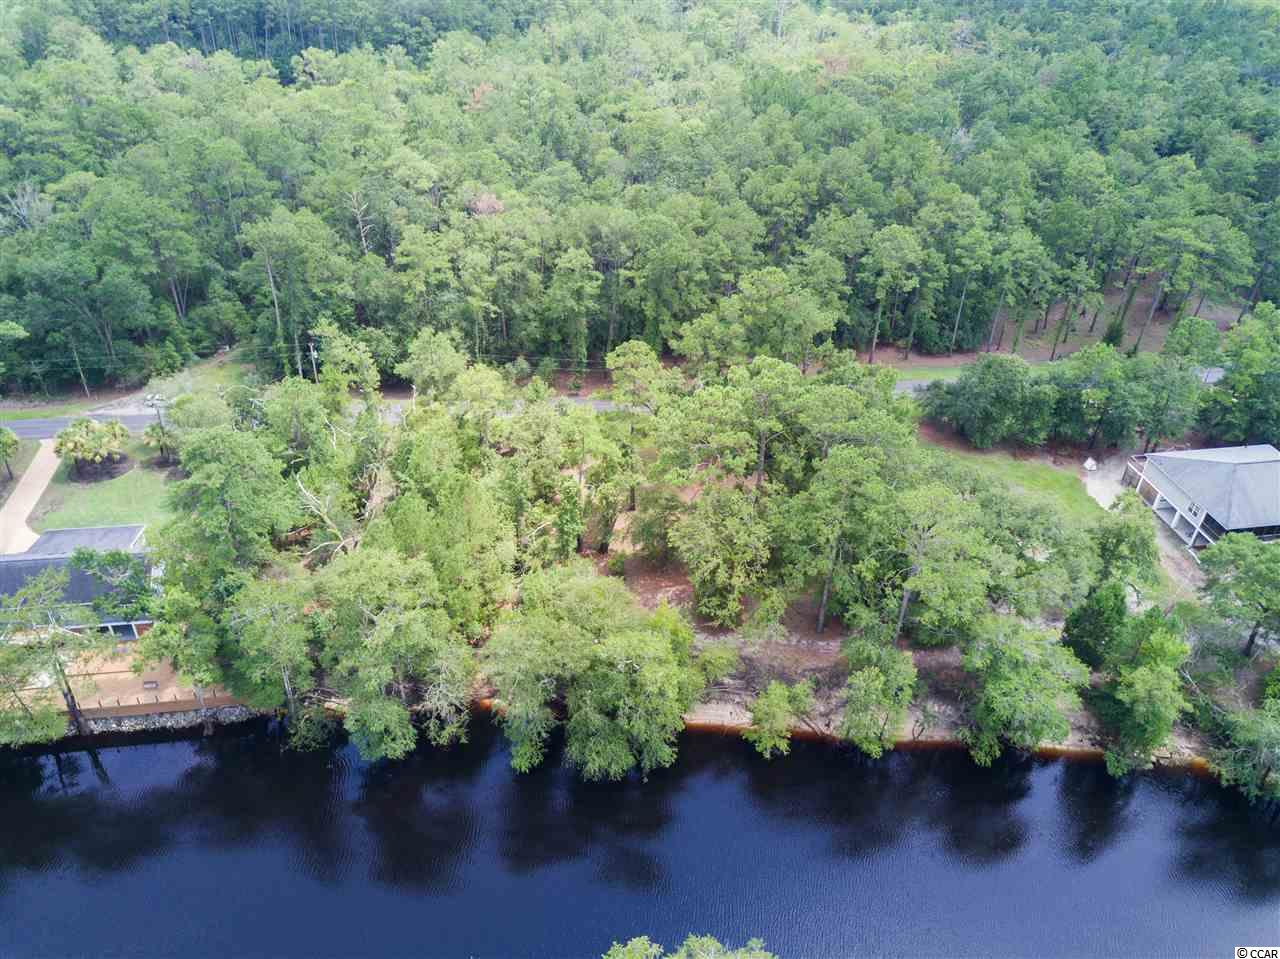 Are you looking for a quiet place to build your dream home? Not only could you build your dream home on the Waccamaw river you would also be surrounded with widlife.  This lot would be perfect for someone looking to be just 20 minutes from the beach, but also have your privacy at the same time.